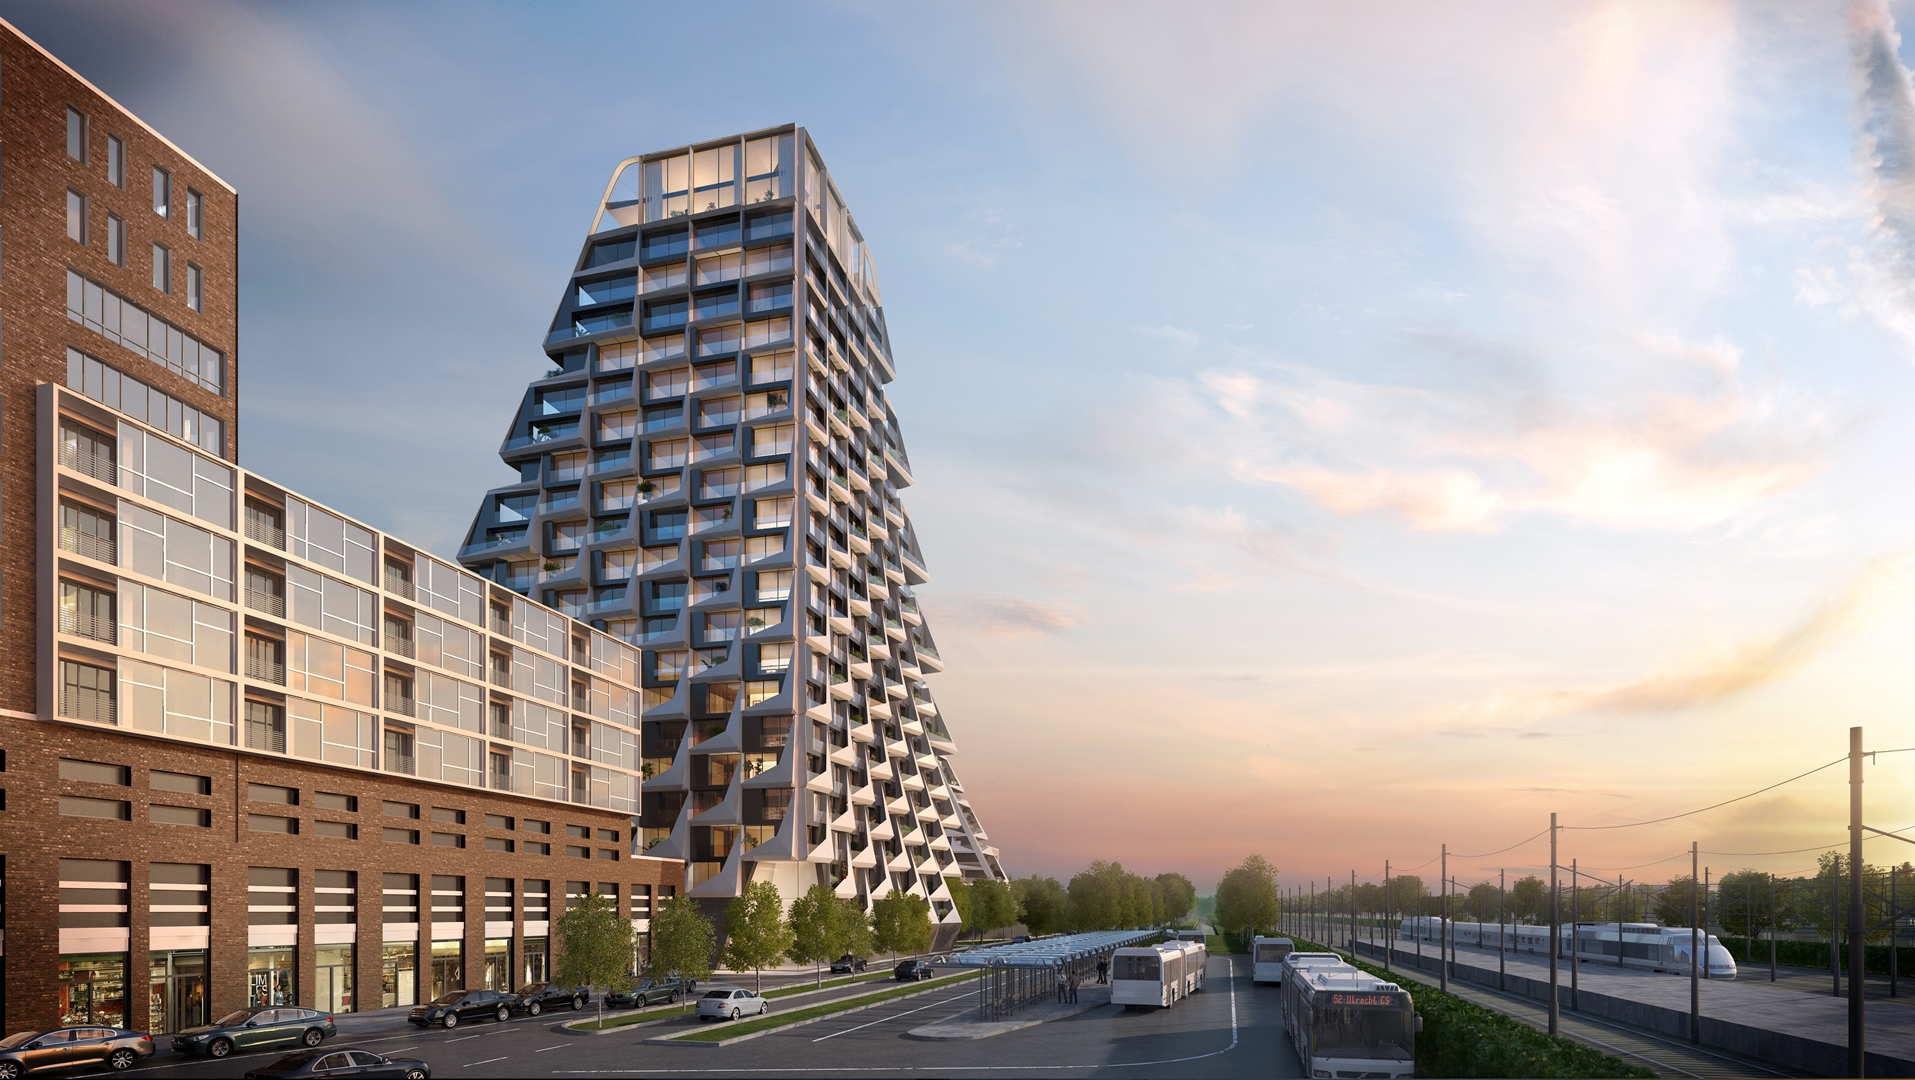 02_Peter_Pichler_Architecture_looping_towers_Netherlands_STREET_VIEW (Copy)